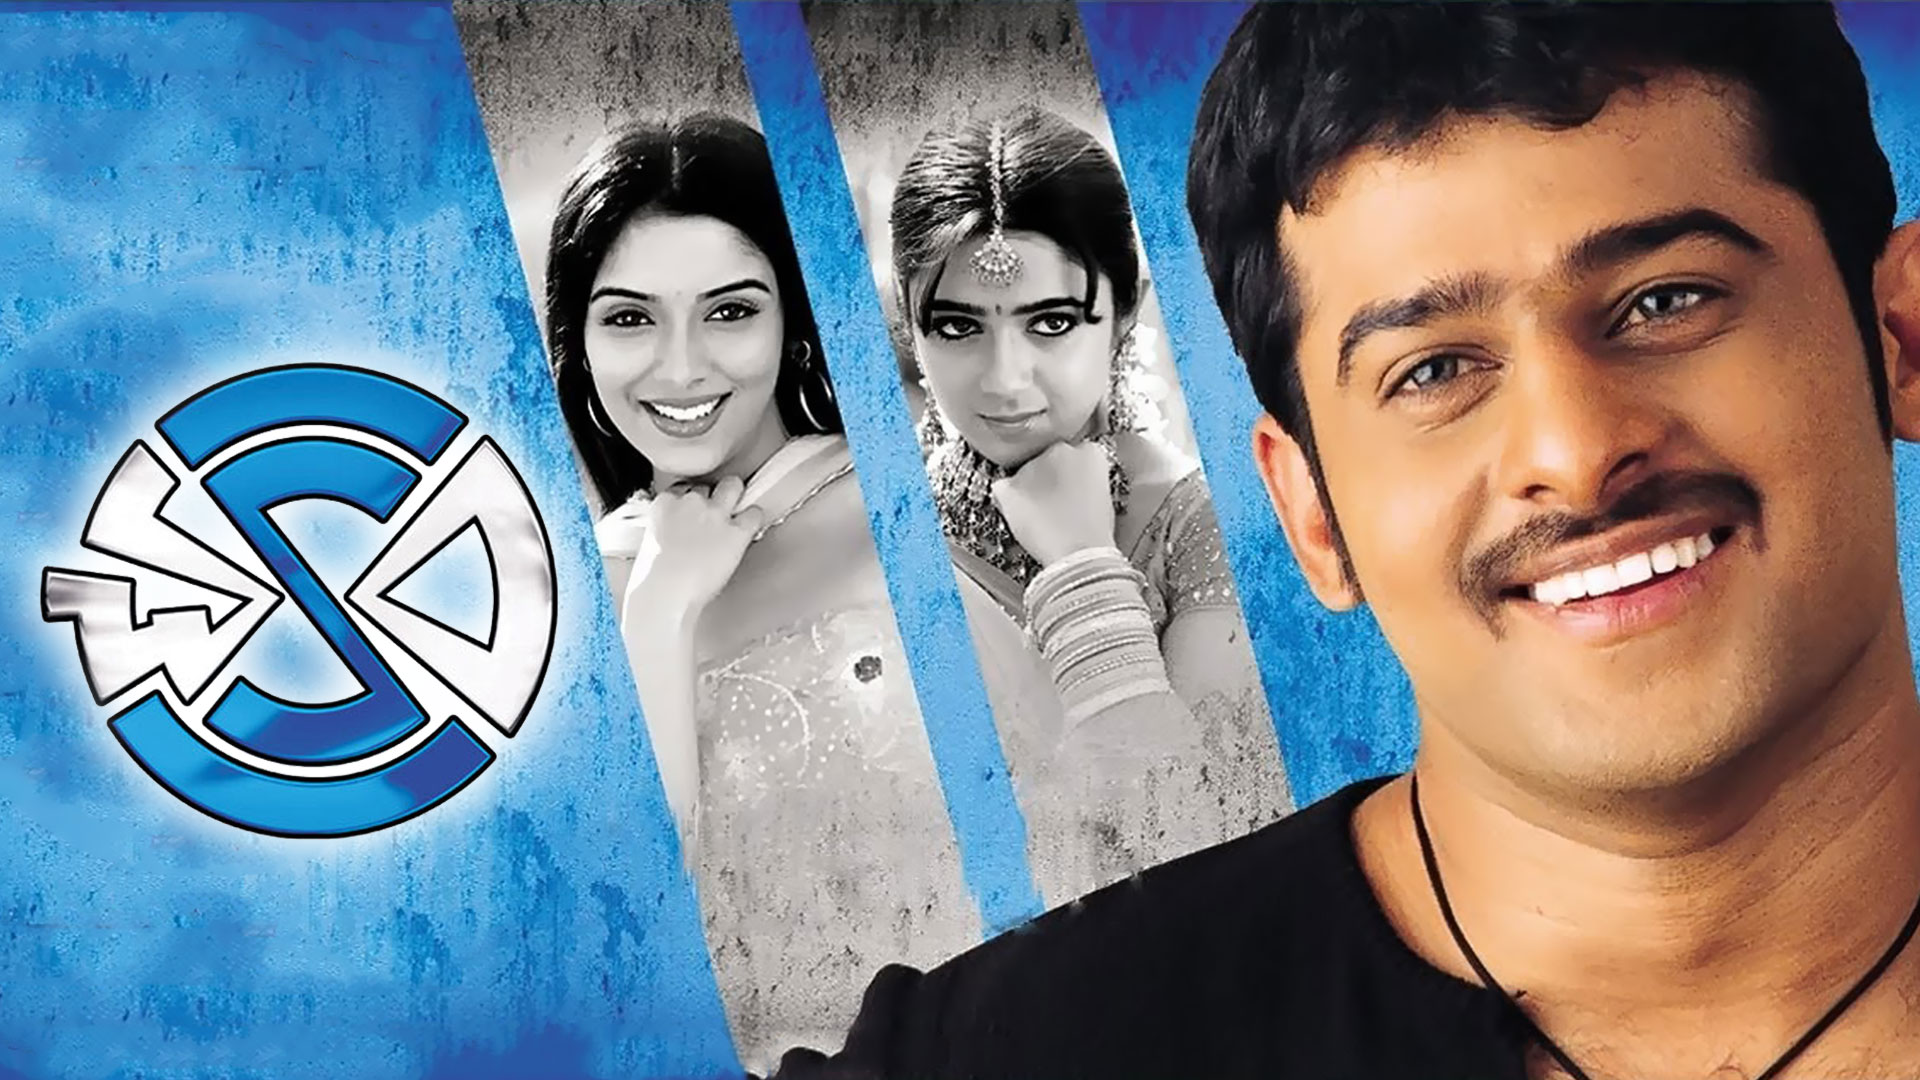 Watch Chakram Full Length Movie Online in HD Quality - 1080 p